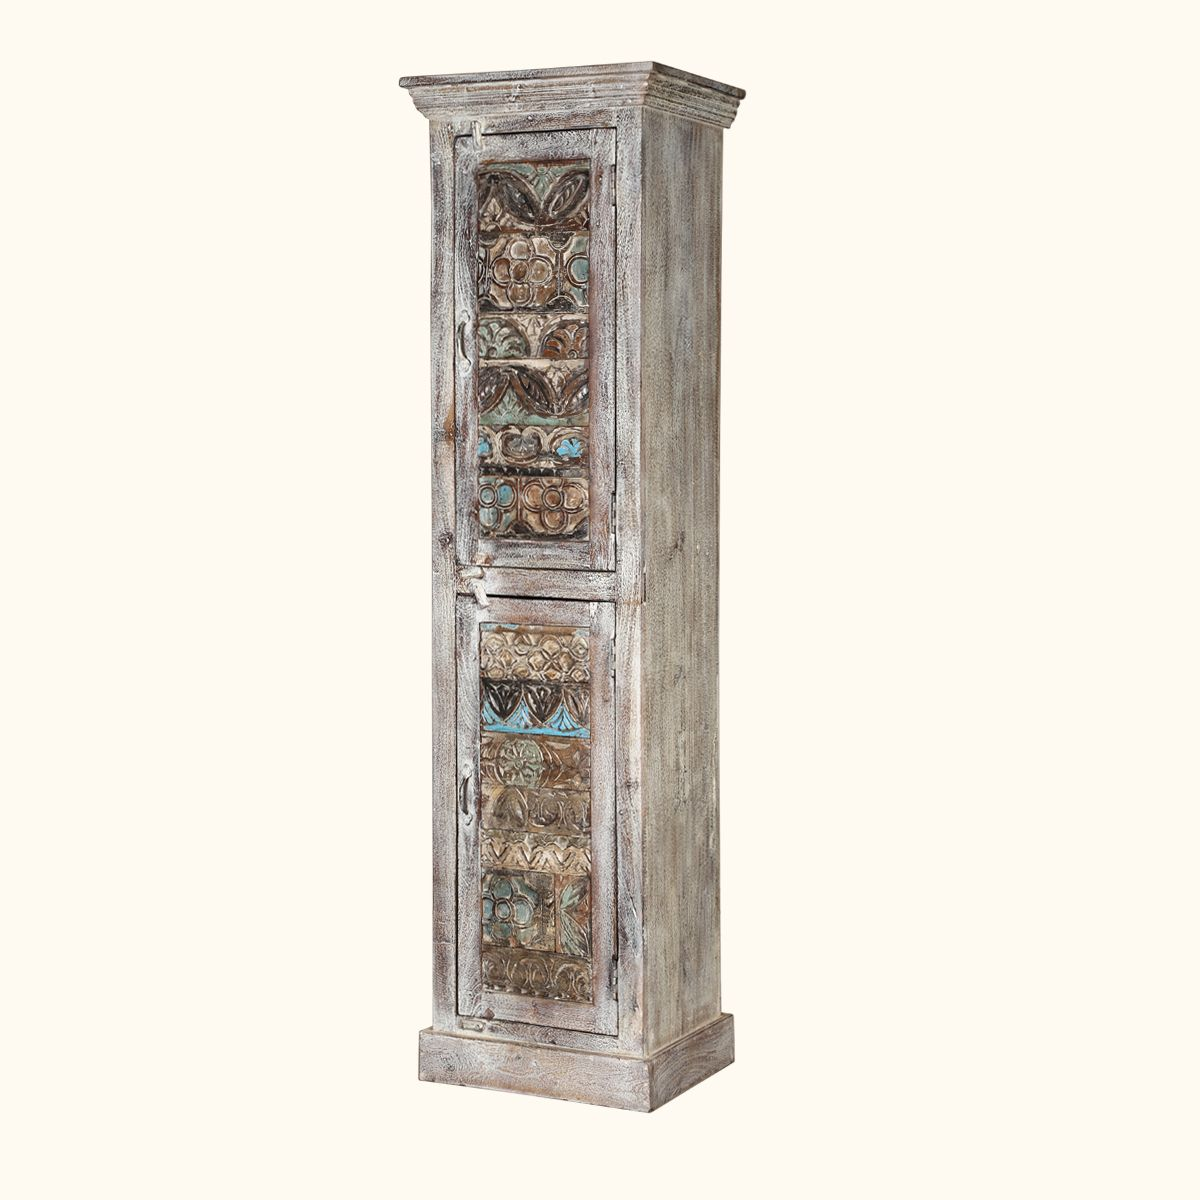 Bring to your home the essence of old world charm and accentuate any space with this storage armoire. The armoire comes with four shelves to store clothing, books, dining ware, or anything that you desire.  The rustic storage cabinet offers beautiful looks with its reclaimed wood construction and exquisite design with carved floral and leaf motifs in different shades of colors on the front doors.  Whether it's your bedroom, living space, or hallway, this beautiful addition to any space will…